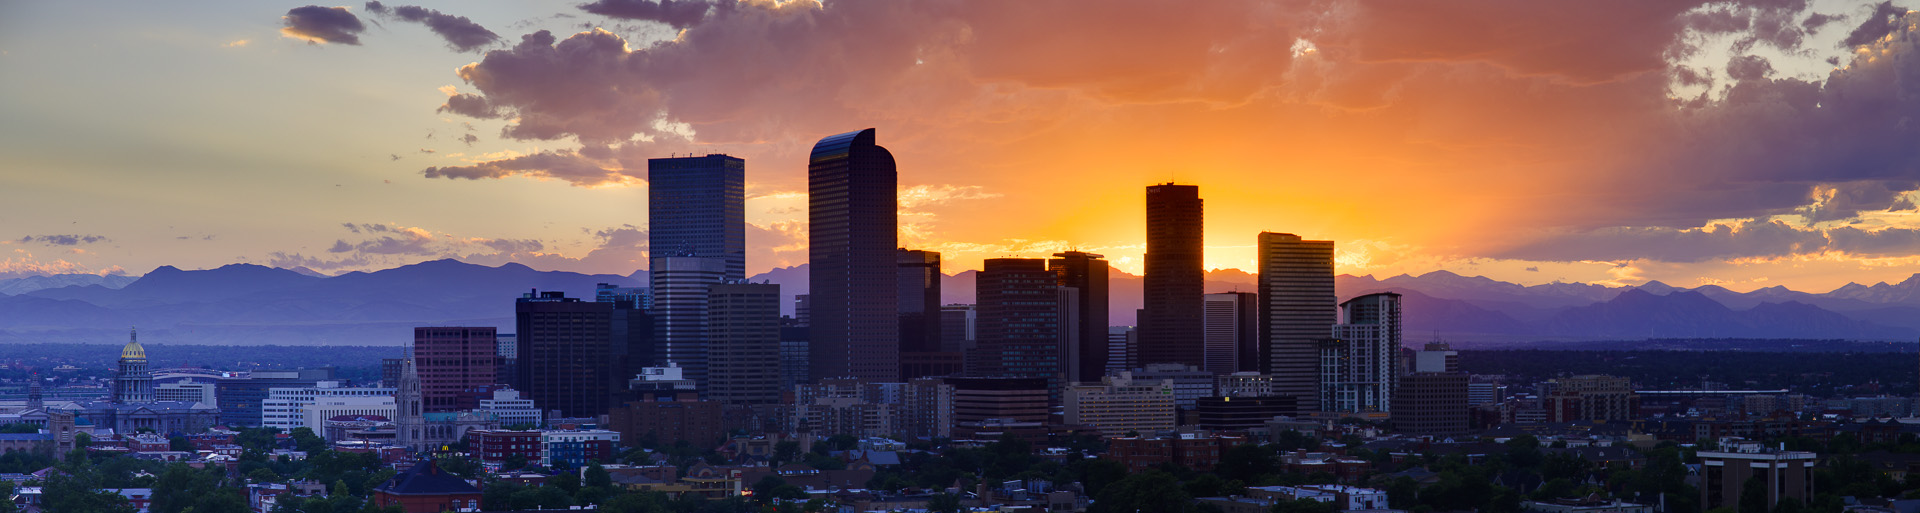 Denver Skyline Sunset.jpg